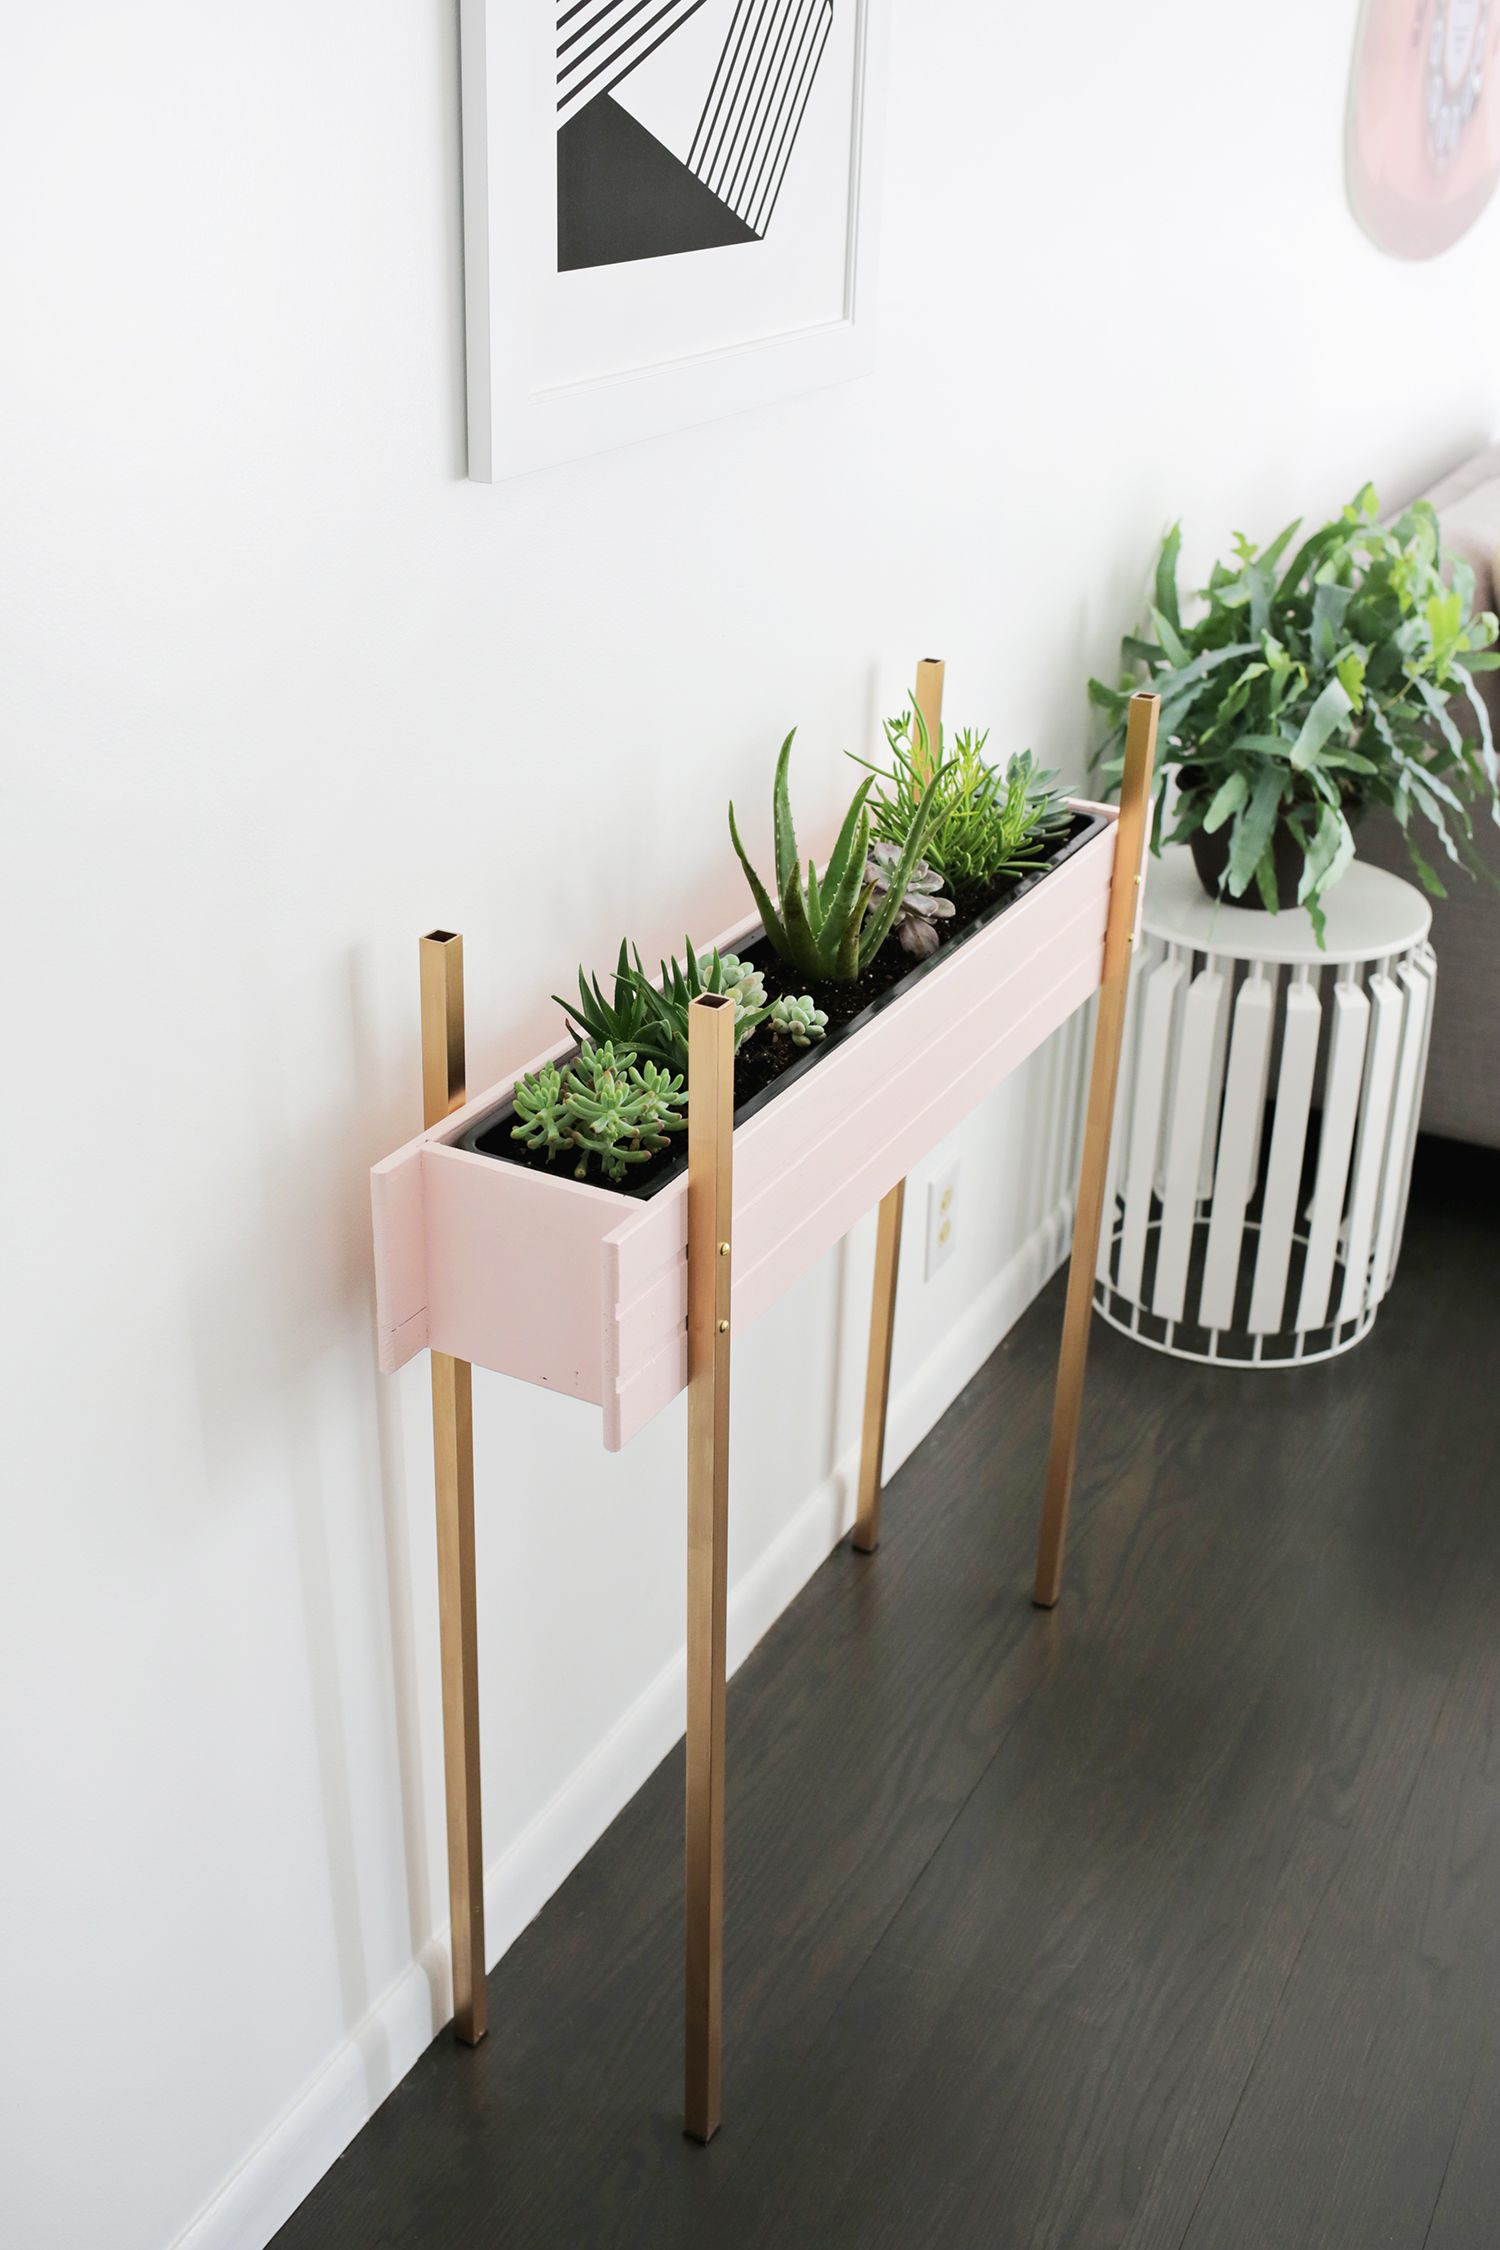 Skinny Planter Stand DIY Diy plant stand, Planters, Garden